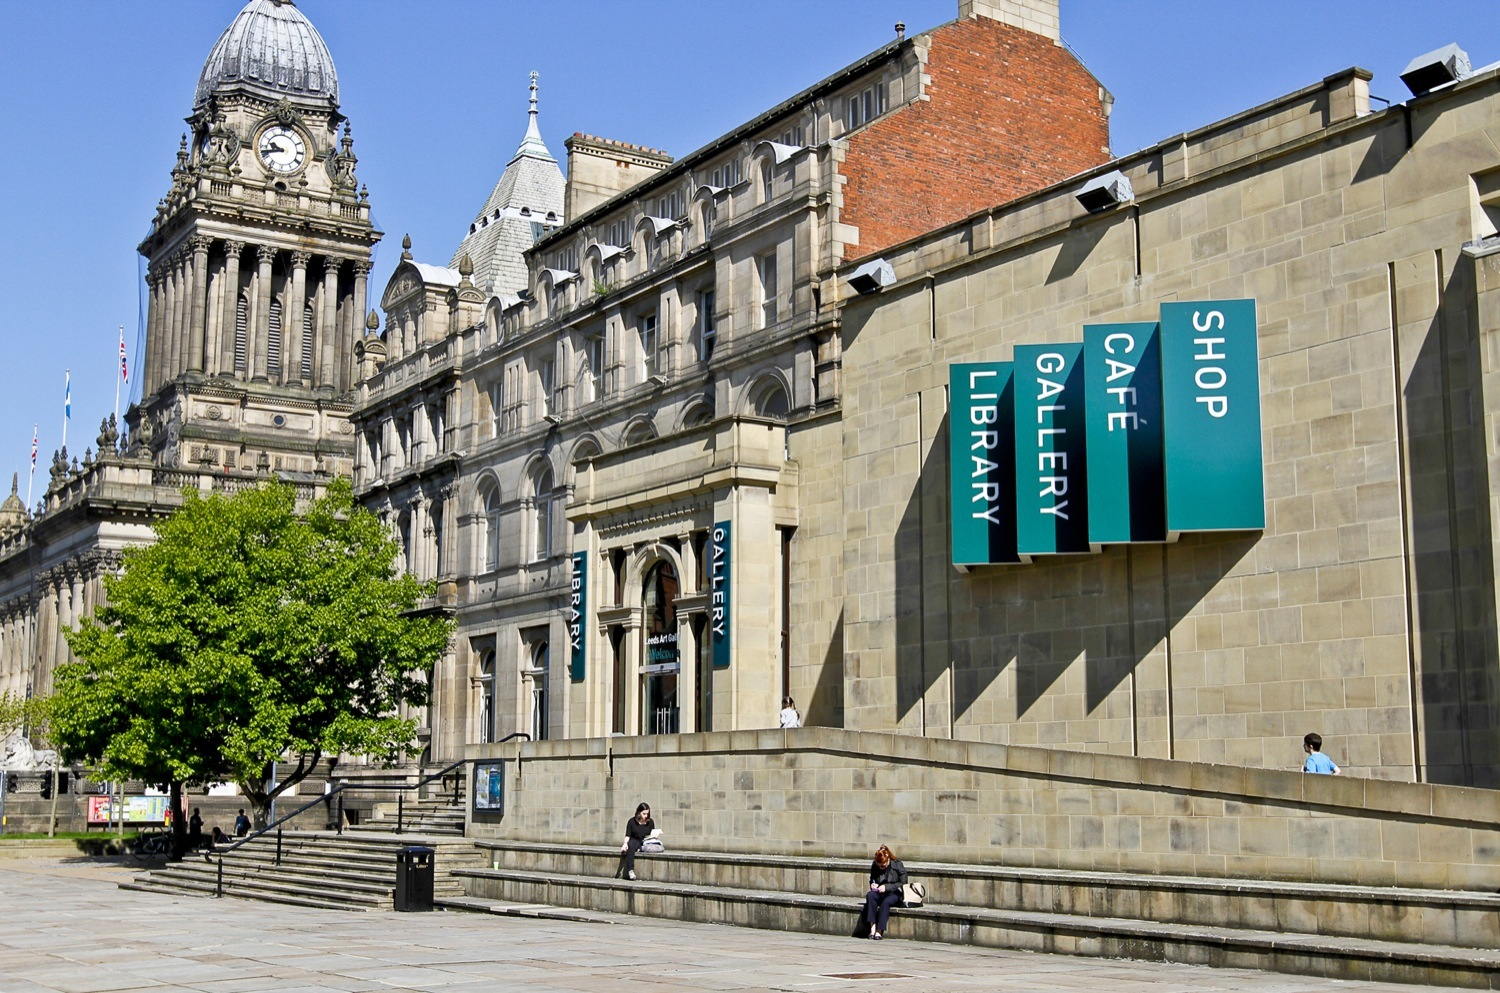 The best art galleries in Leeds